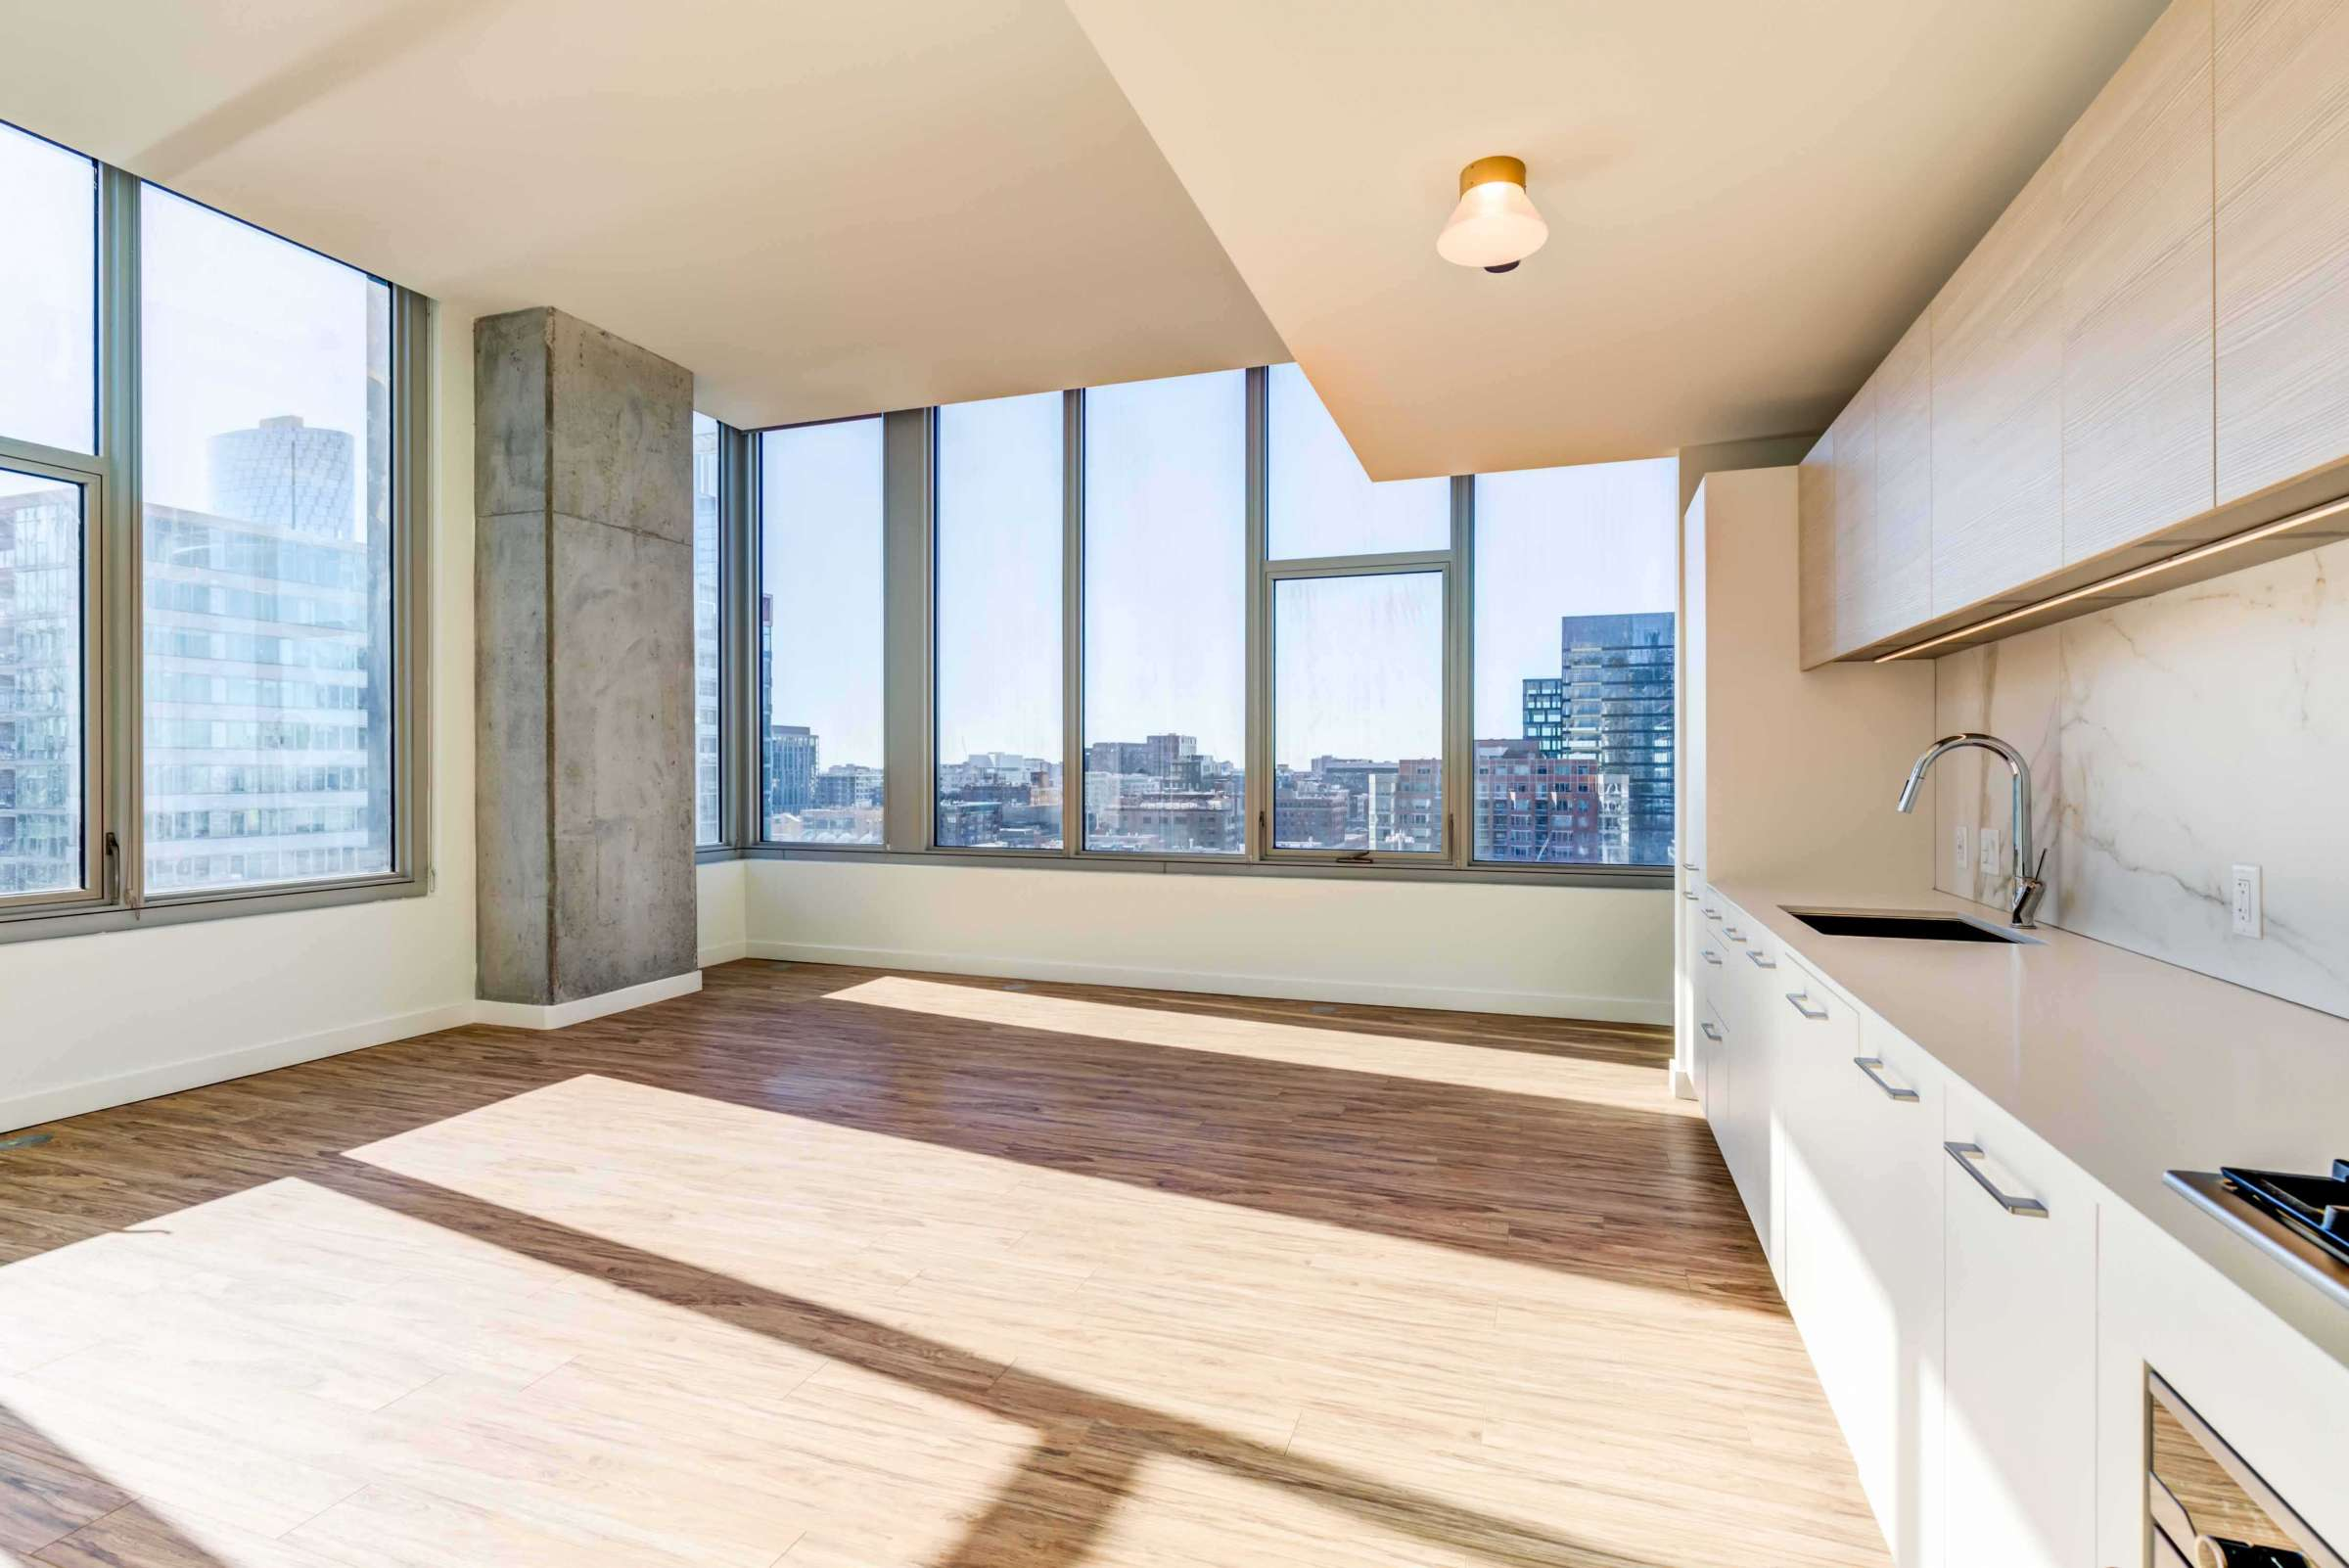 Luxury West Loop Apartments EMME - Large Windows With Views and Modern Kitchen